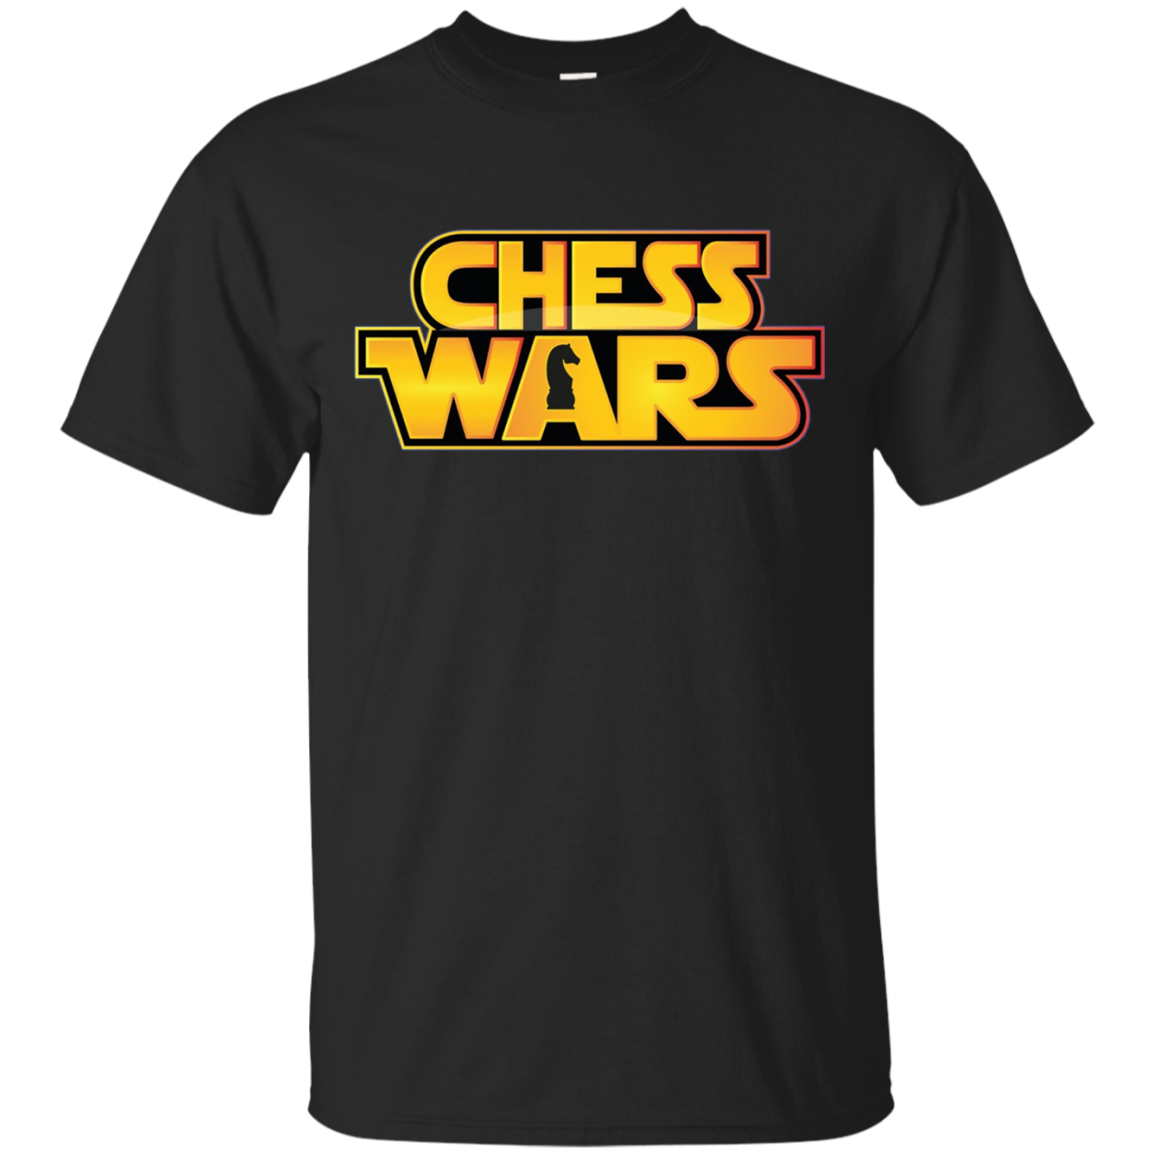 Gift for Chess Player - Chess T Shirt - Chess Wars Knight